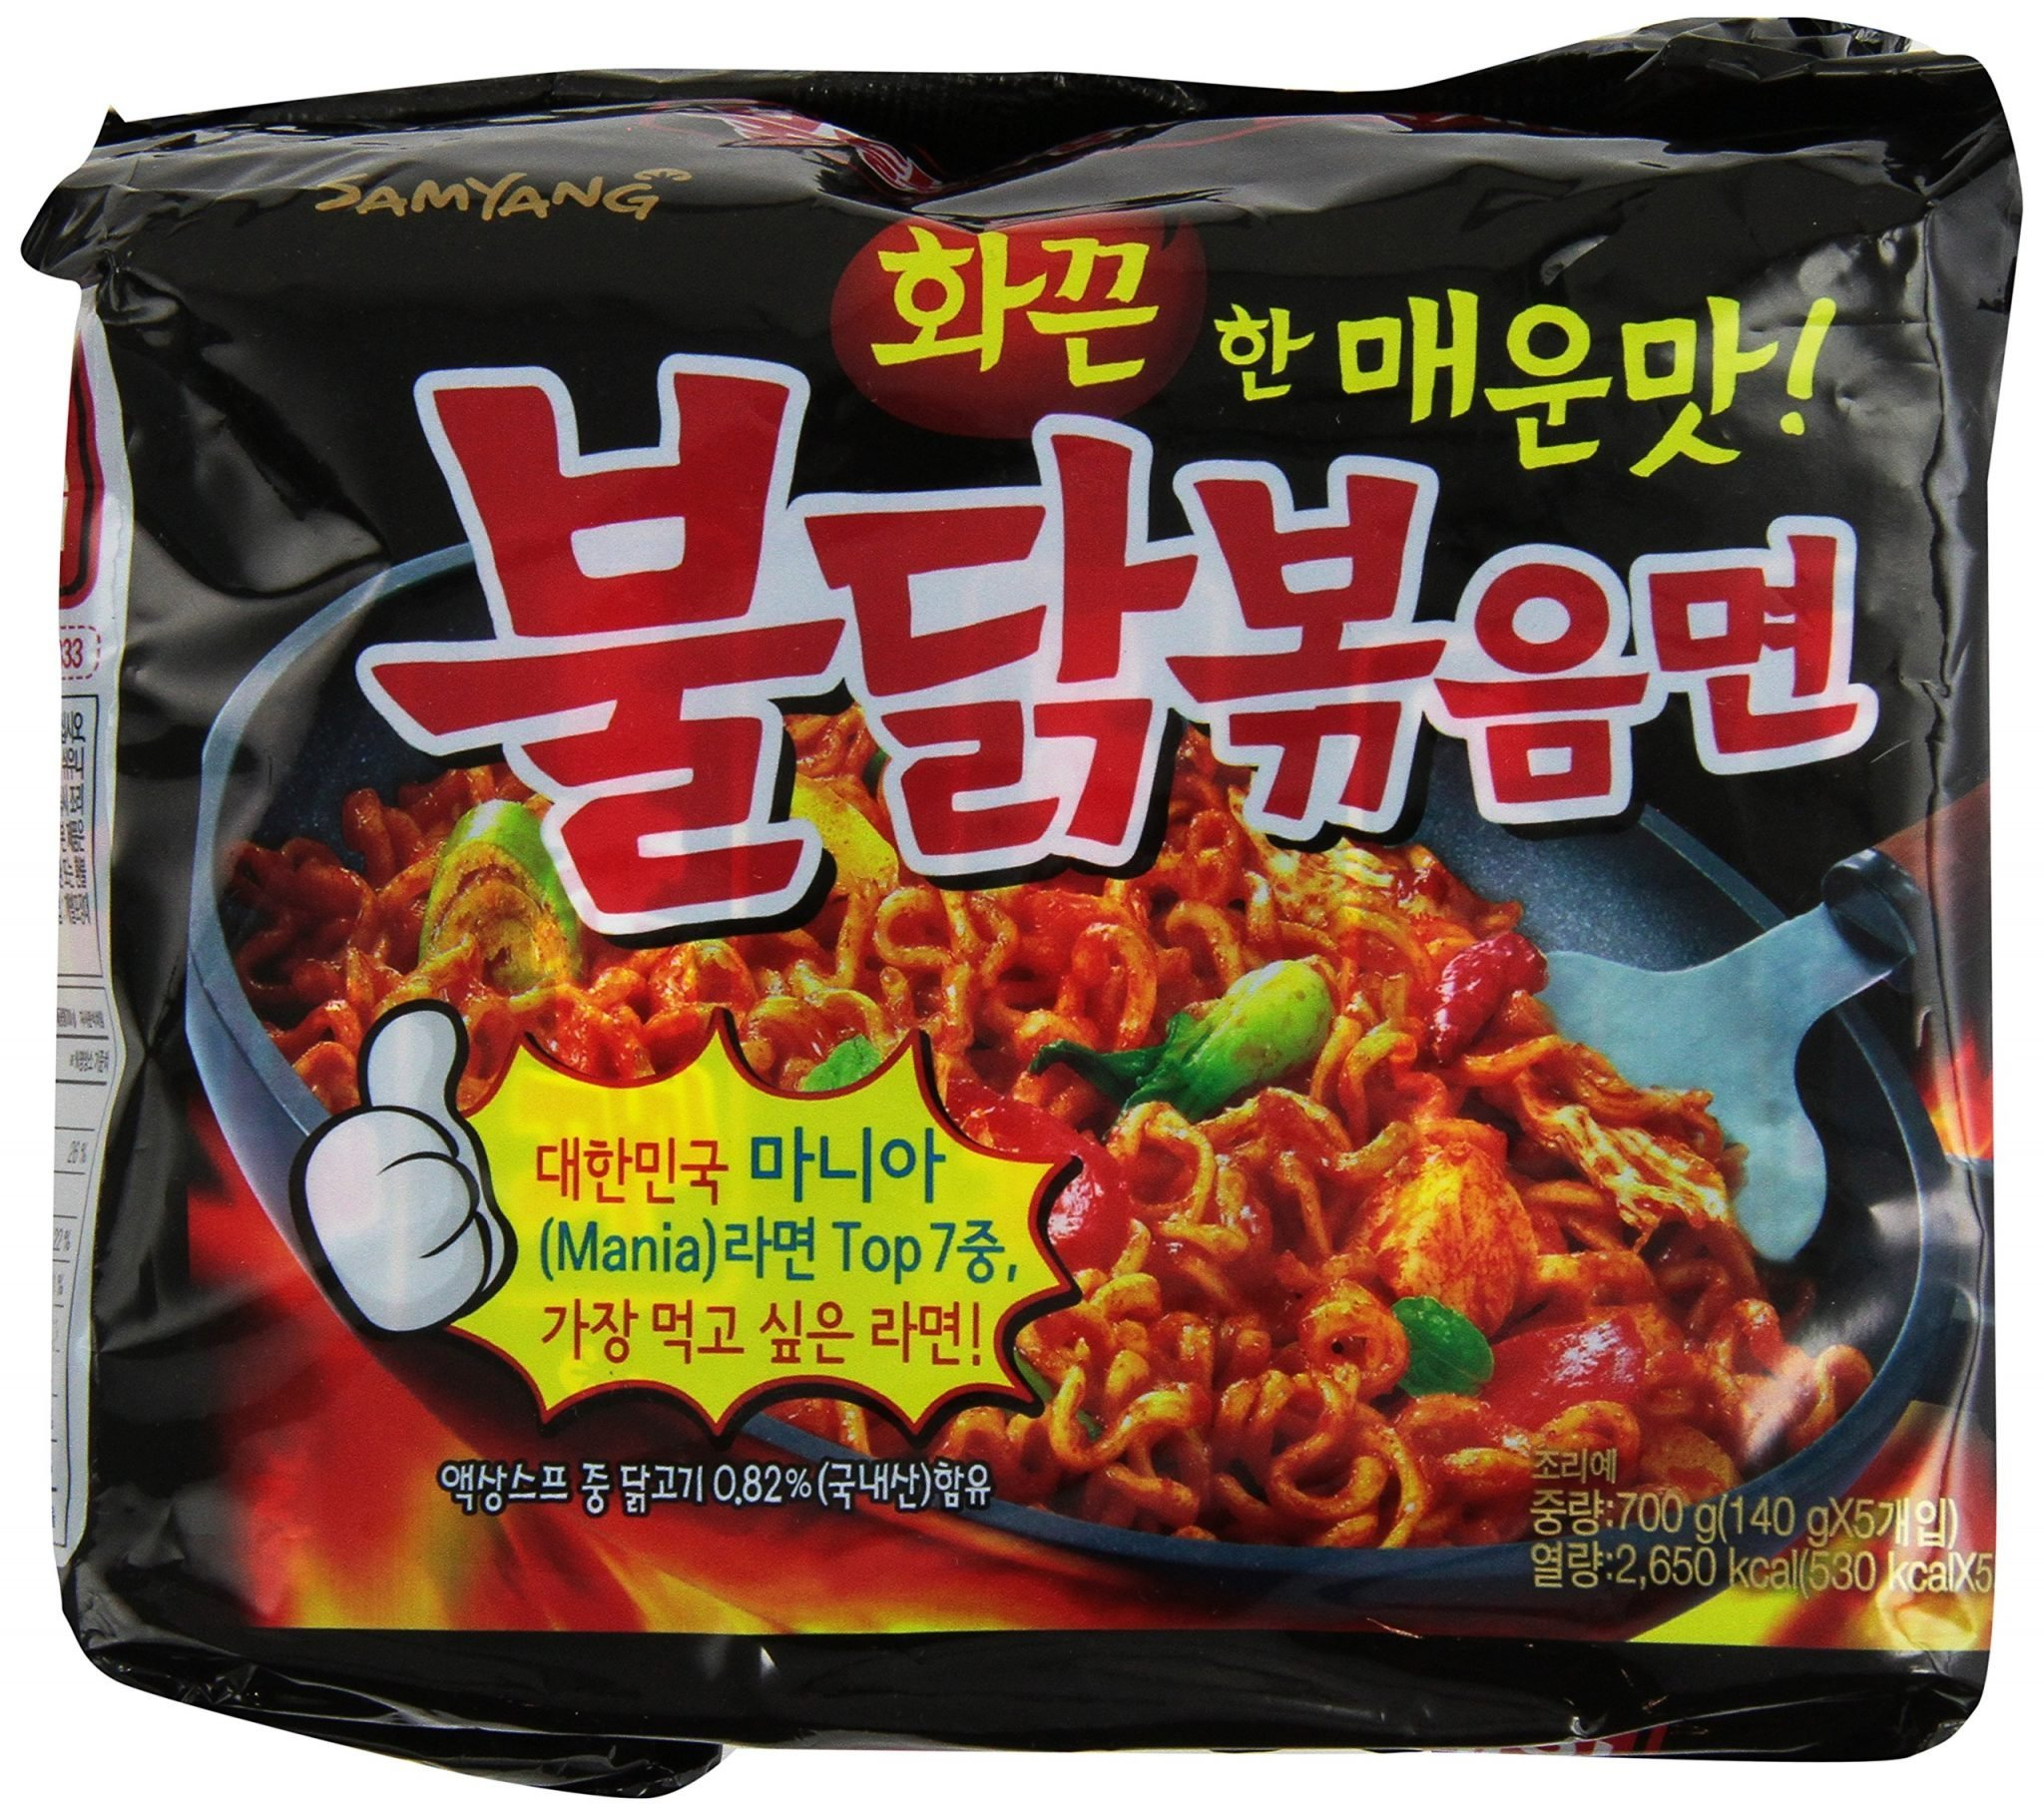 Buy Samyang 5 Pack 2x Spicy Hot Chicken Flavored Ramen In Cheap Nuclear New Roasted Noodles 493 Oz Of